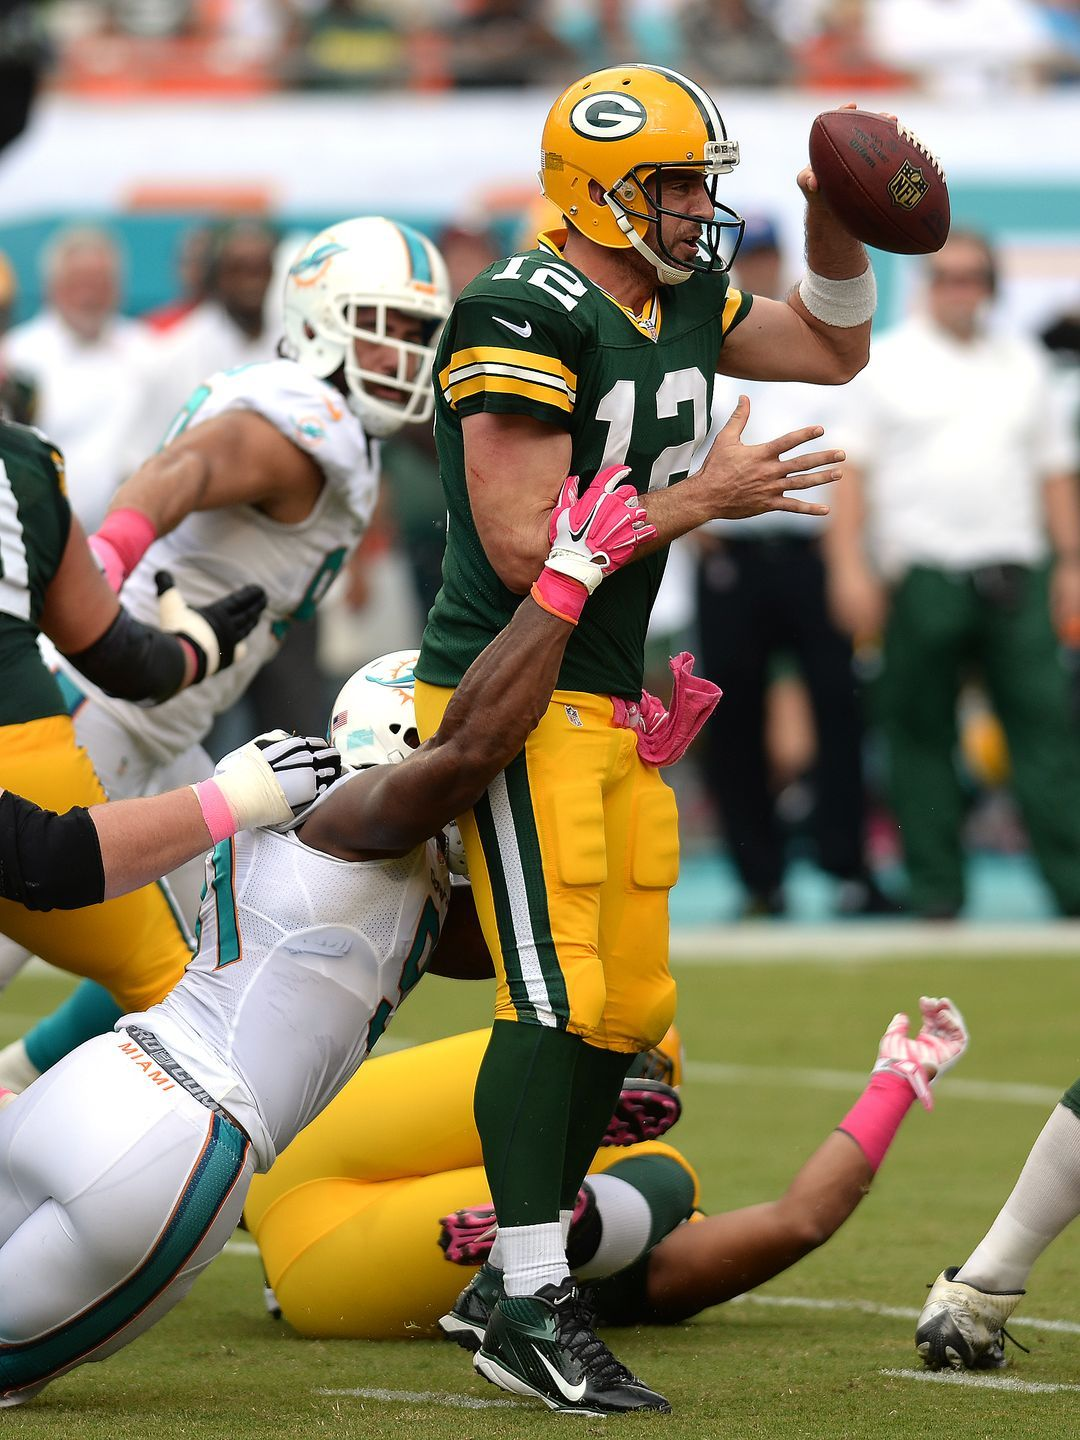 Week 6 Green Bay Packers 27 Miami Dolphins 24 Green Bay Packers Green Bay Packers